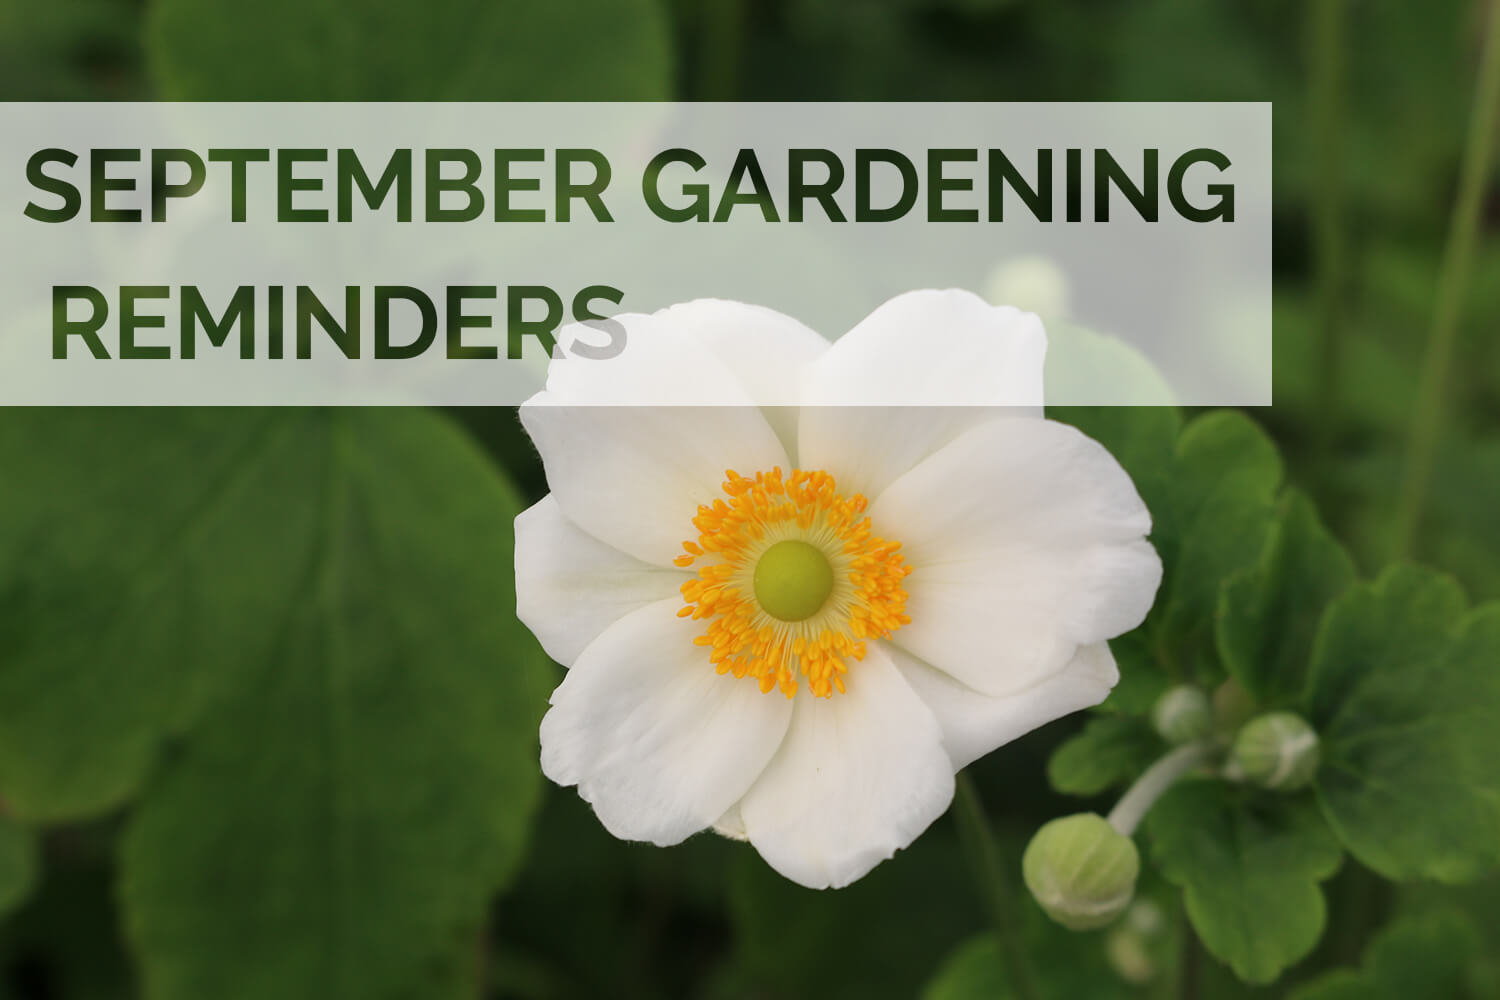 Jobs to do in the garden this September